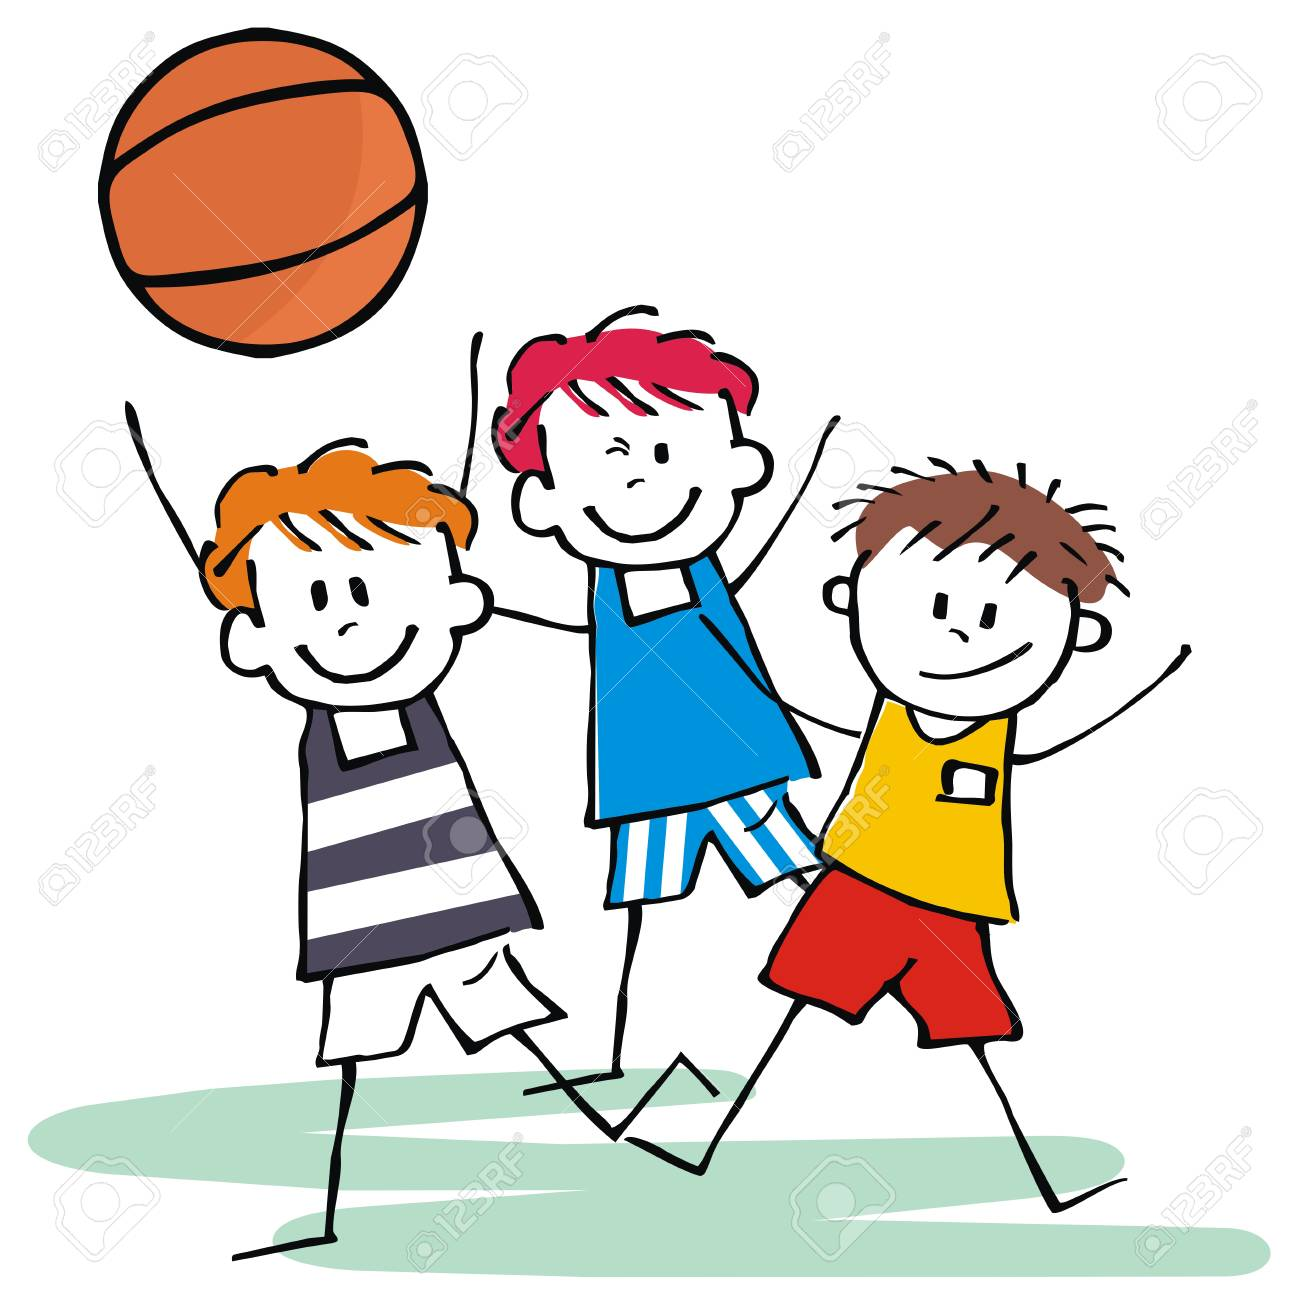 Sports Team Three Happy Kids Basketball Vector Icon Royalty Free Cliparts Vectors And Stock Illustration Image 107058734